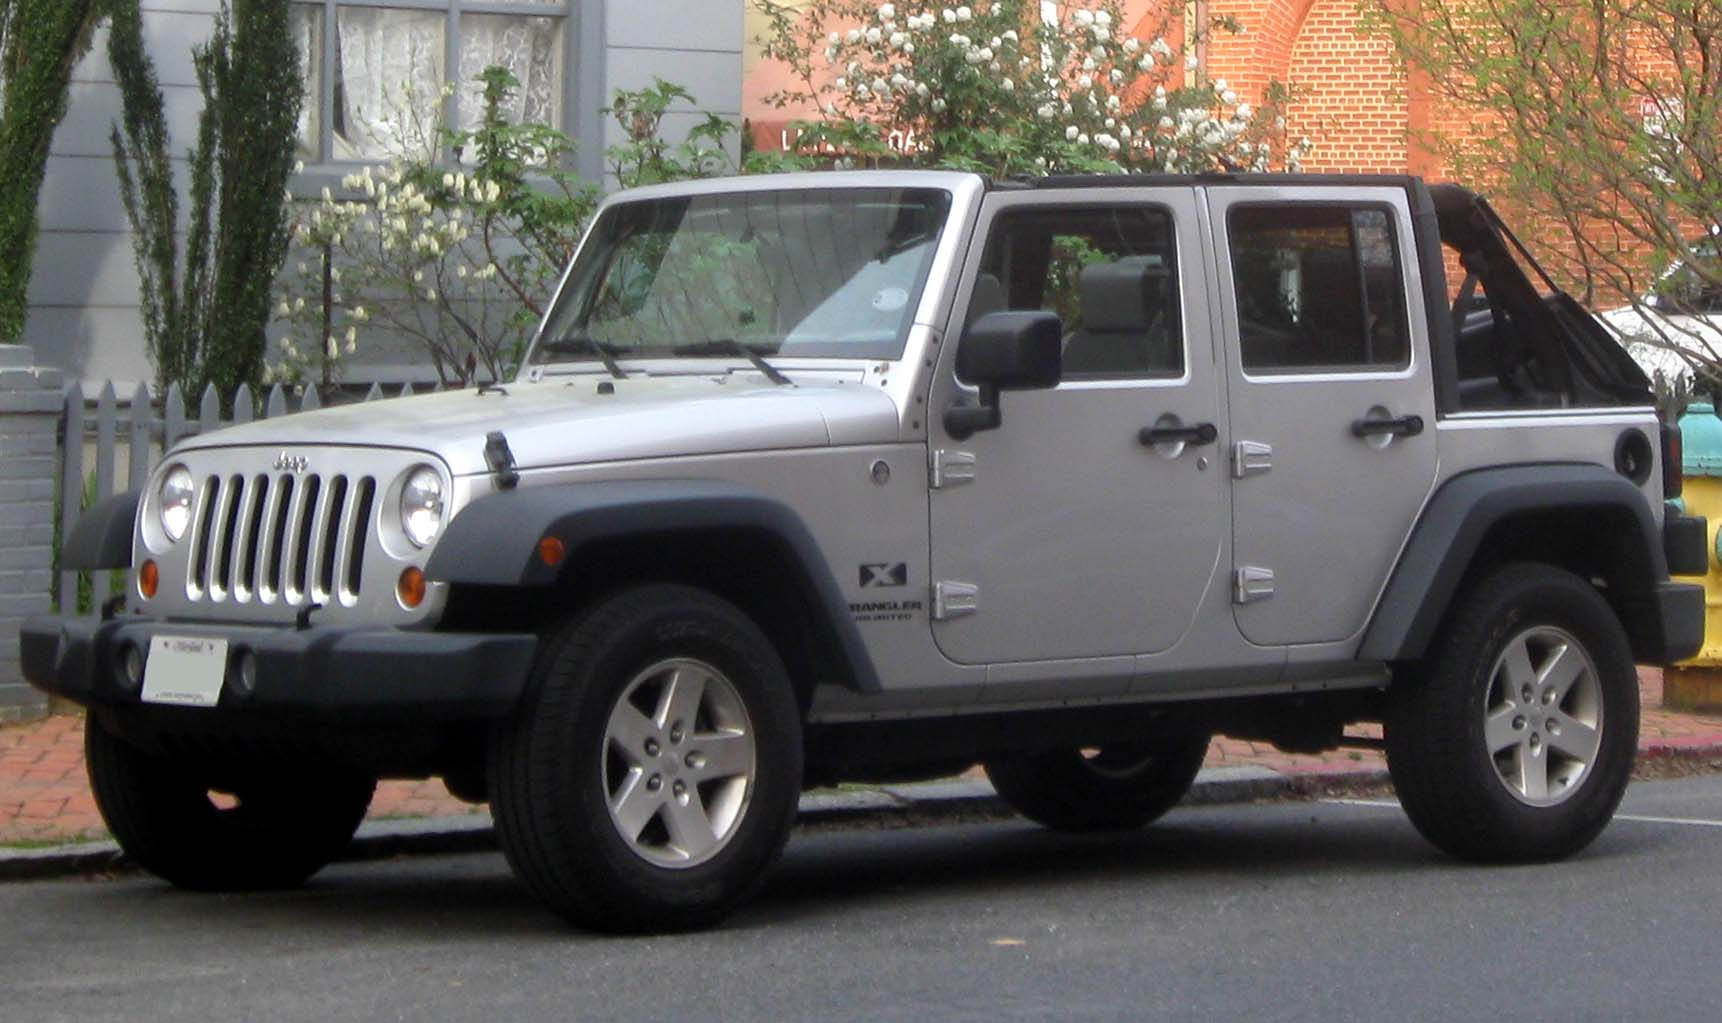 Jeep_Wrangler_Unlimited_X_--_04-07-2010